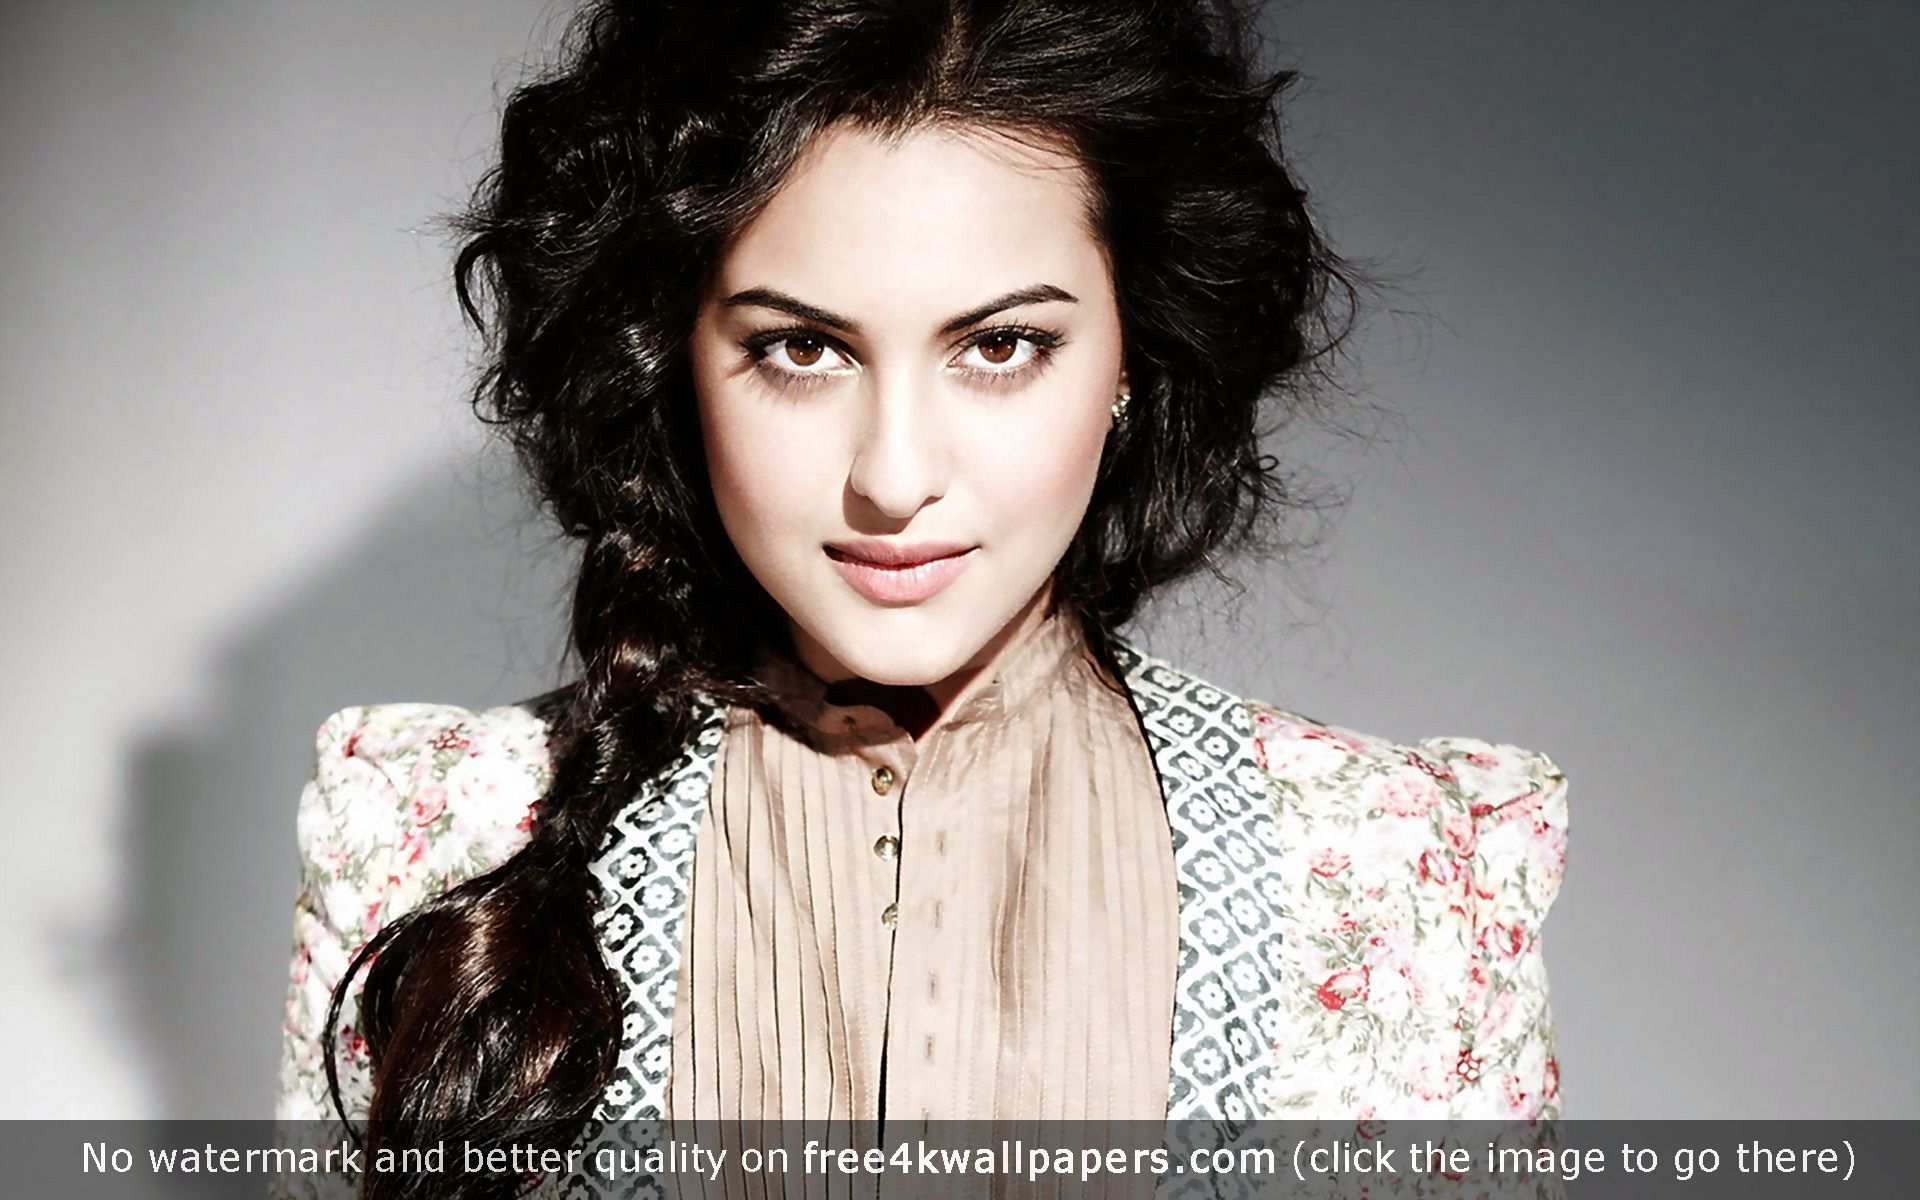 sonakshi sinha 23 hd wallpaper - download sonakshi sinha 23 hd